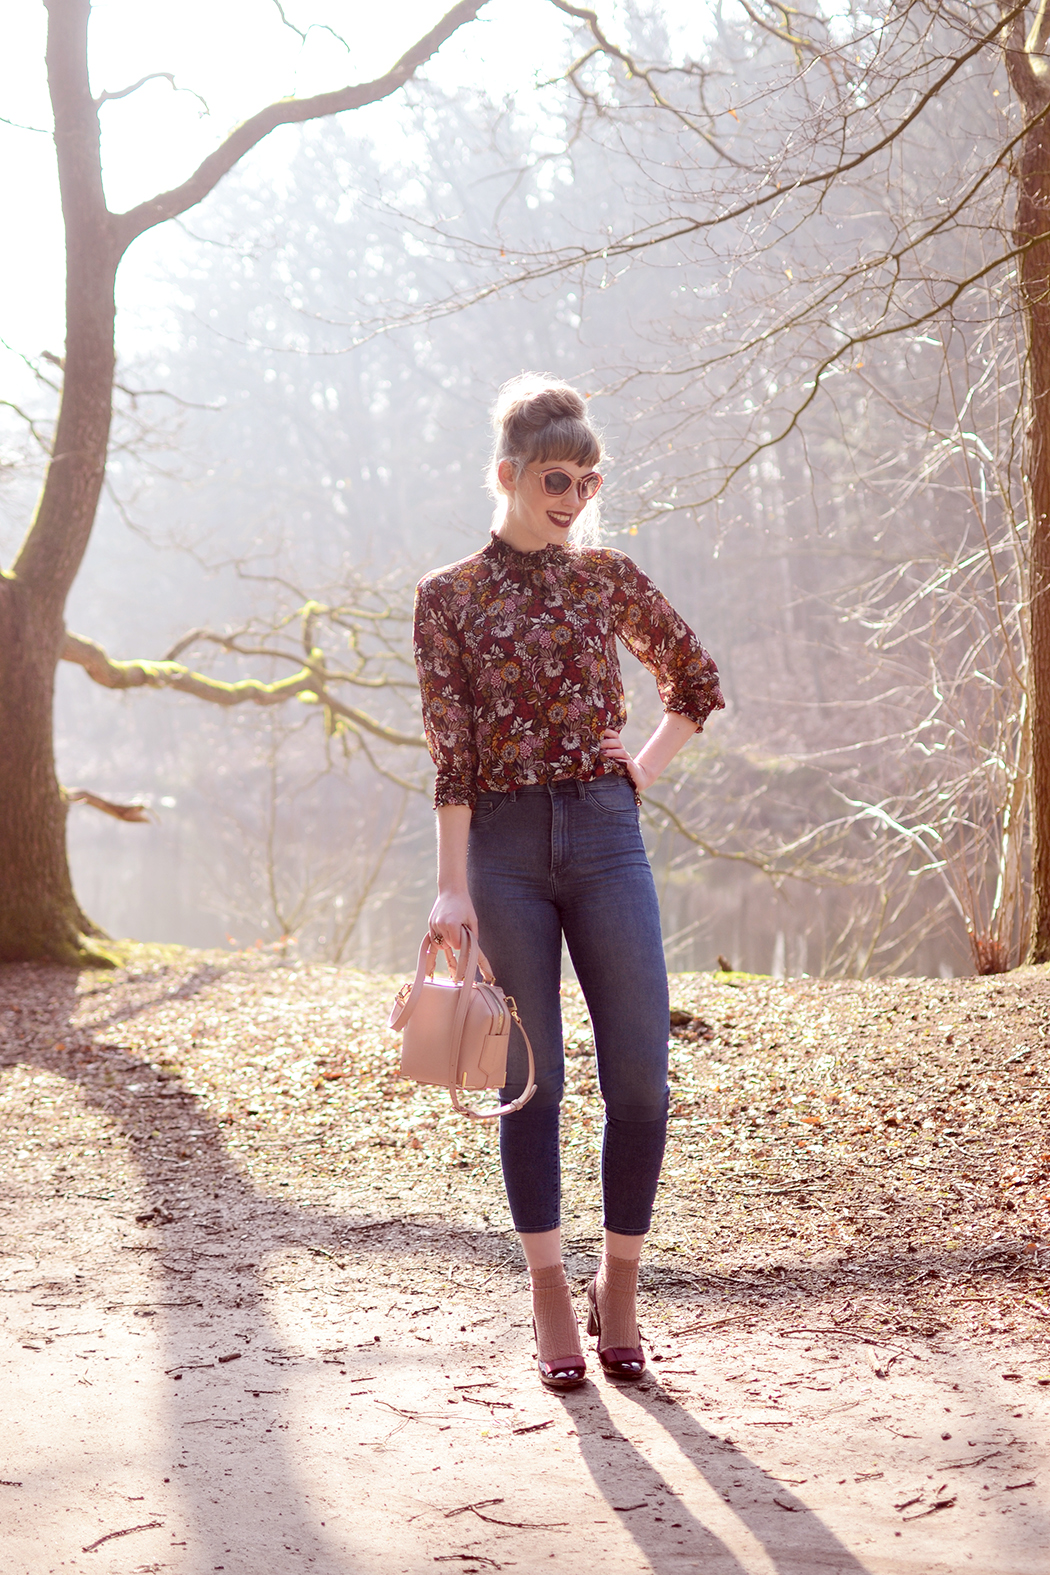 Retromantisch retro romantic fashion blog Zara floral top blouse Alexander Wang mini emile blush bag sunglasses Miu Miu Georgia Rose heels Forever21 socks